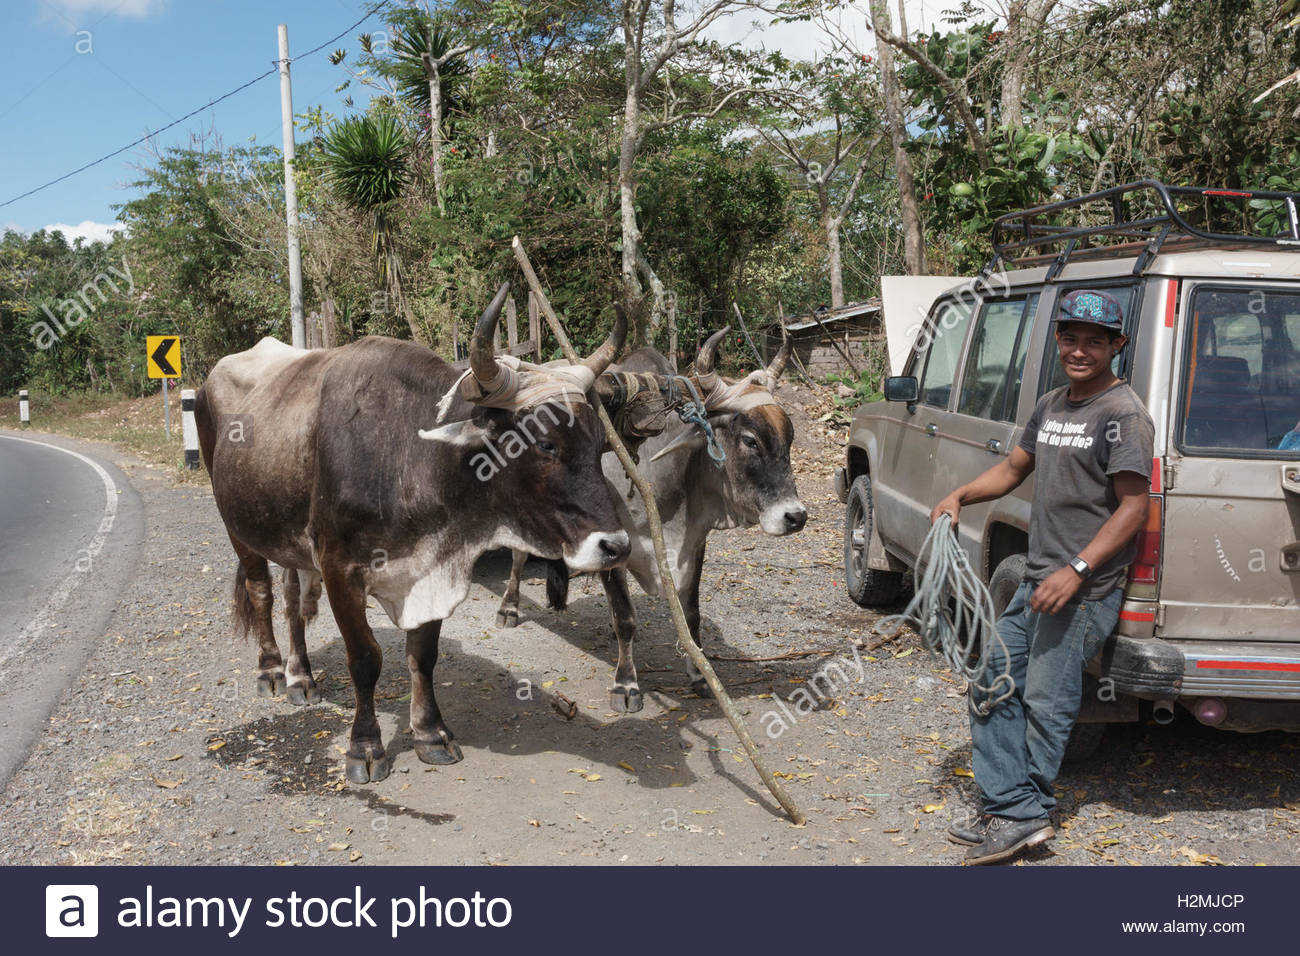 A yoke of oxen and their driver in Jinotega Department. Stock Photo